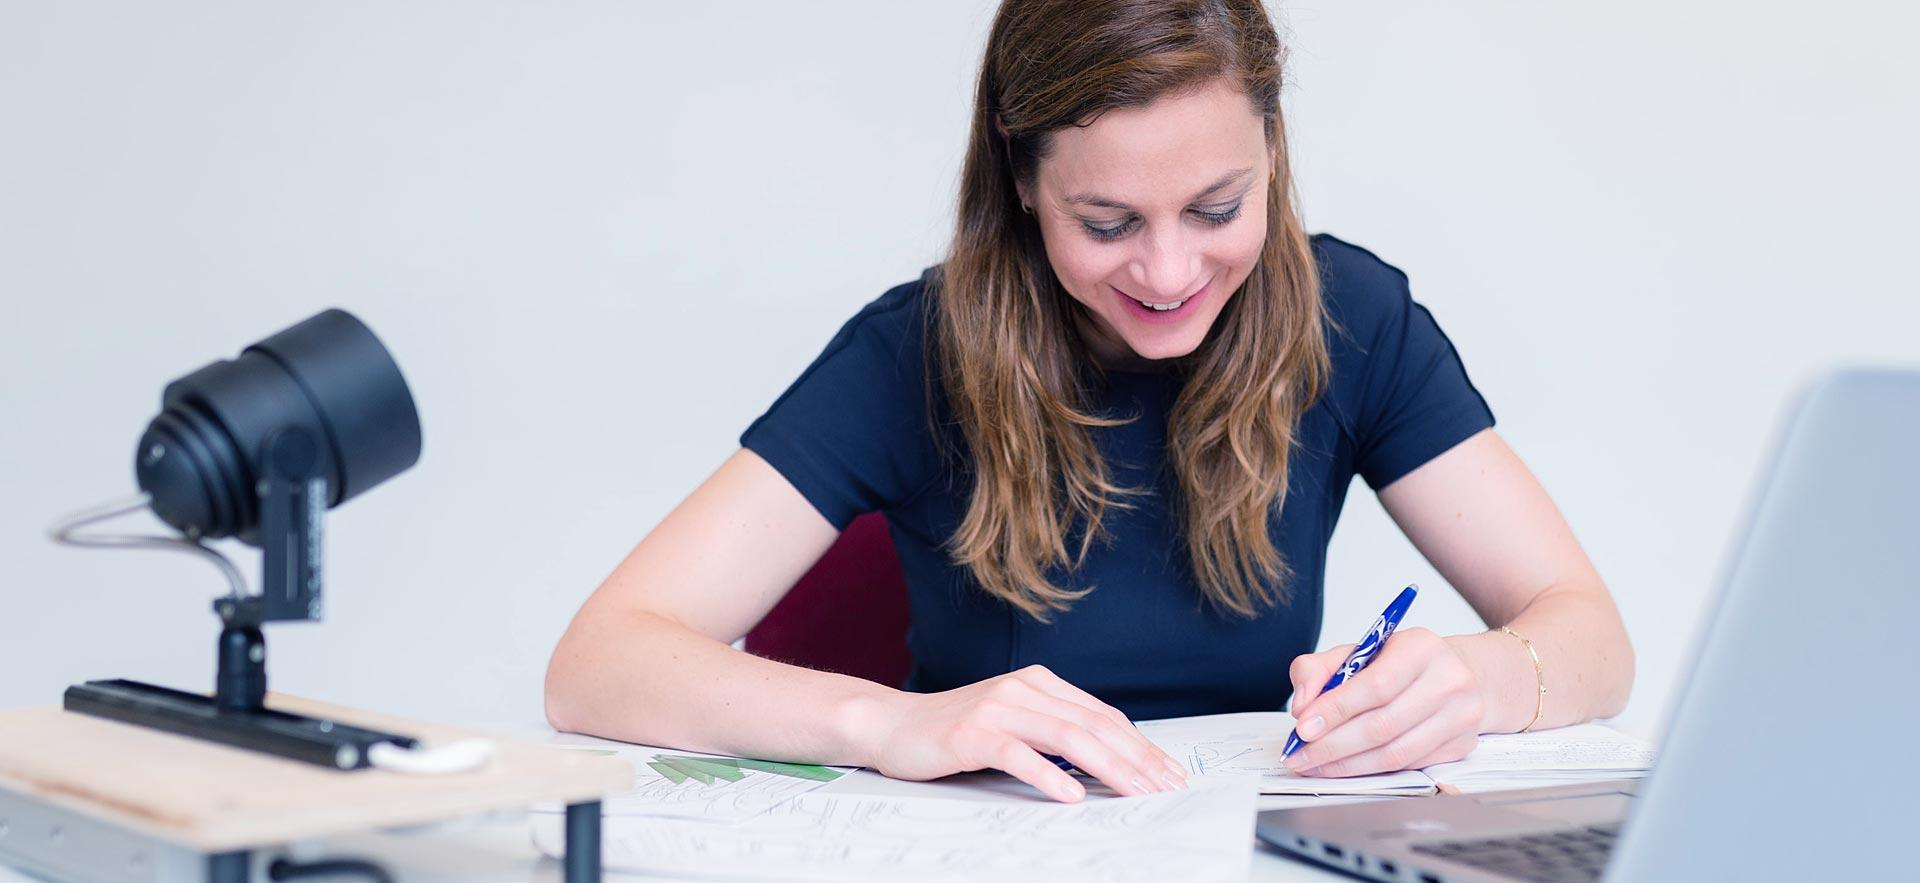 A female business writer smiles as she works on a project.